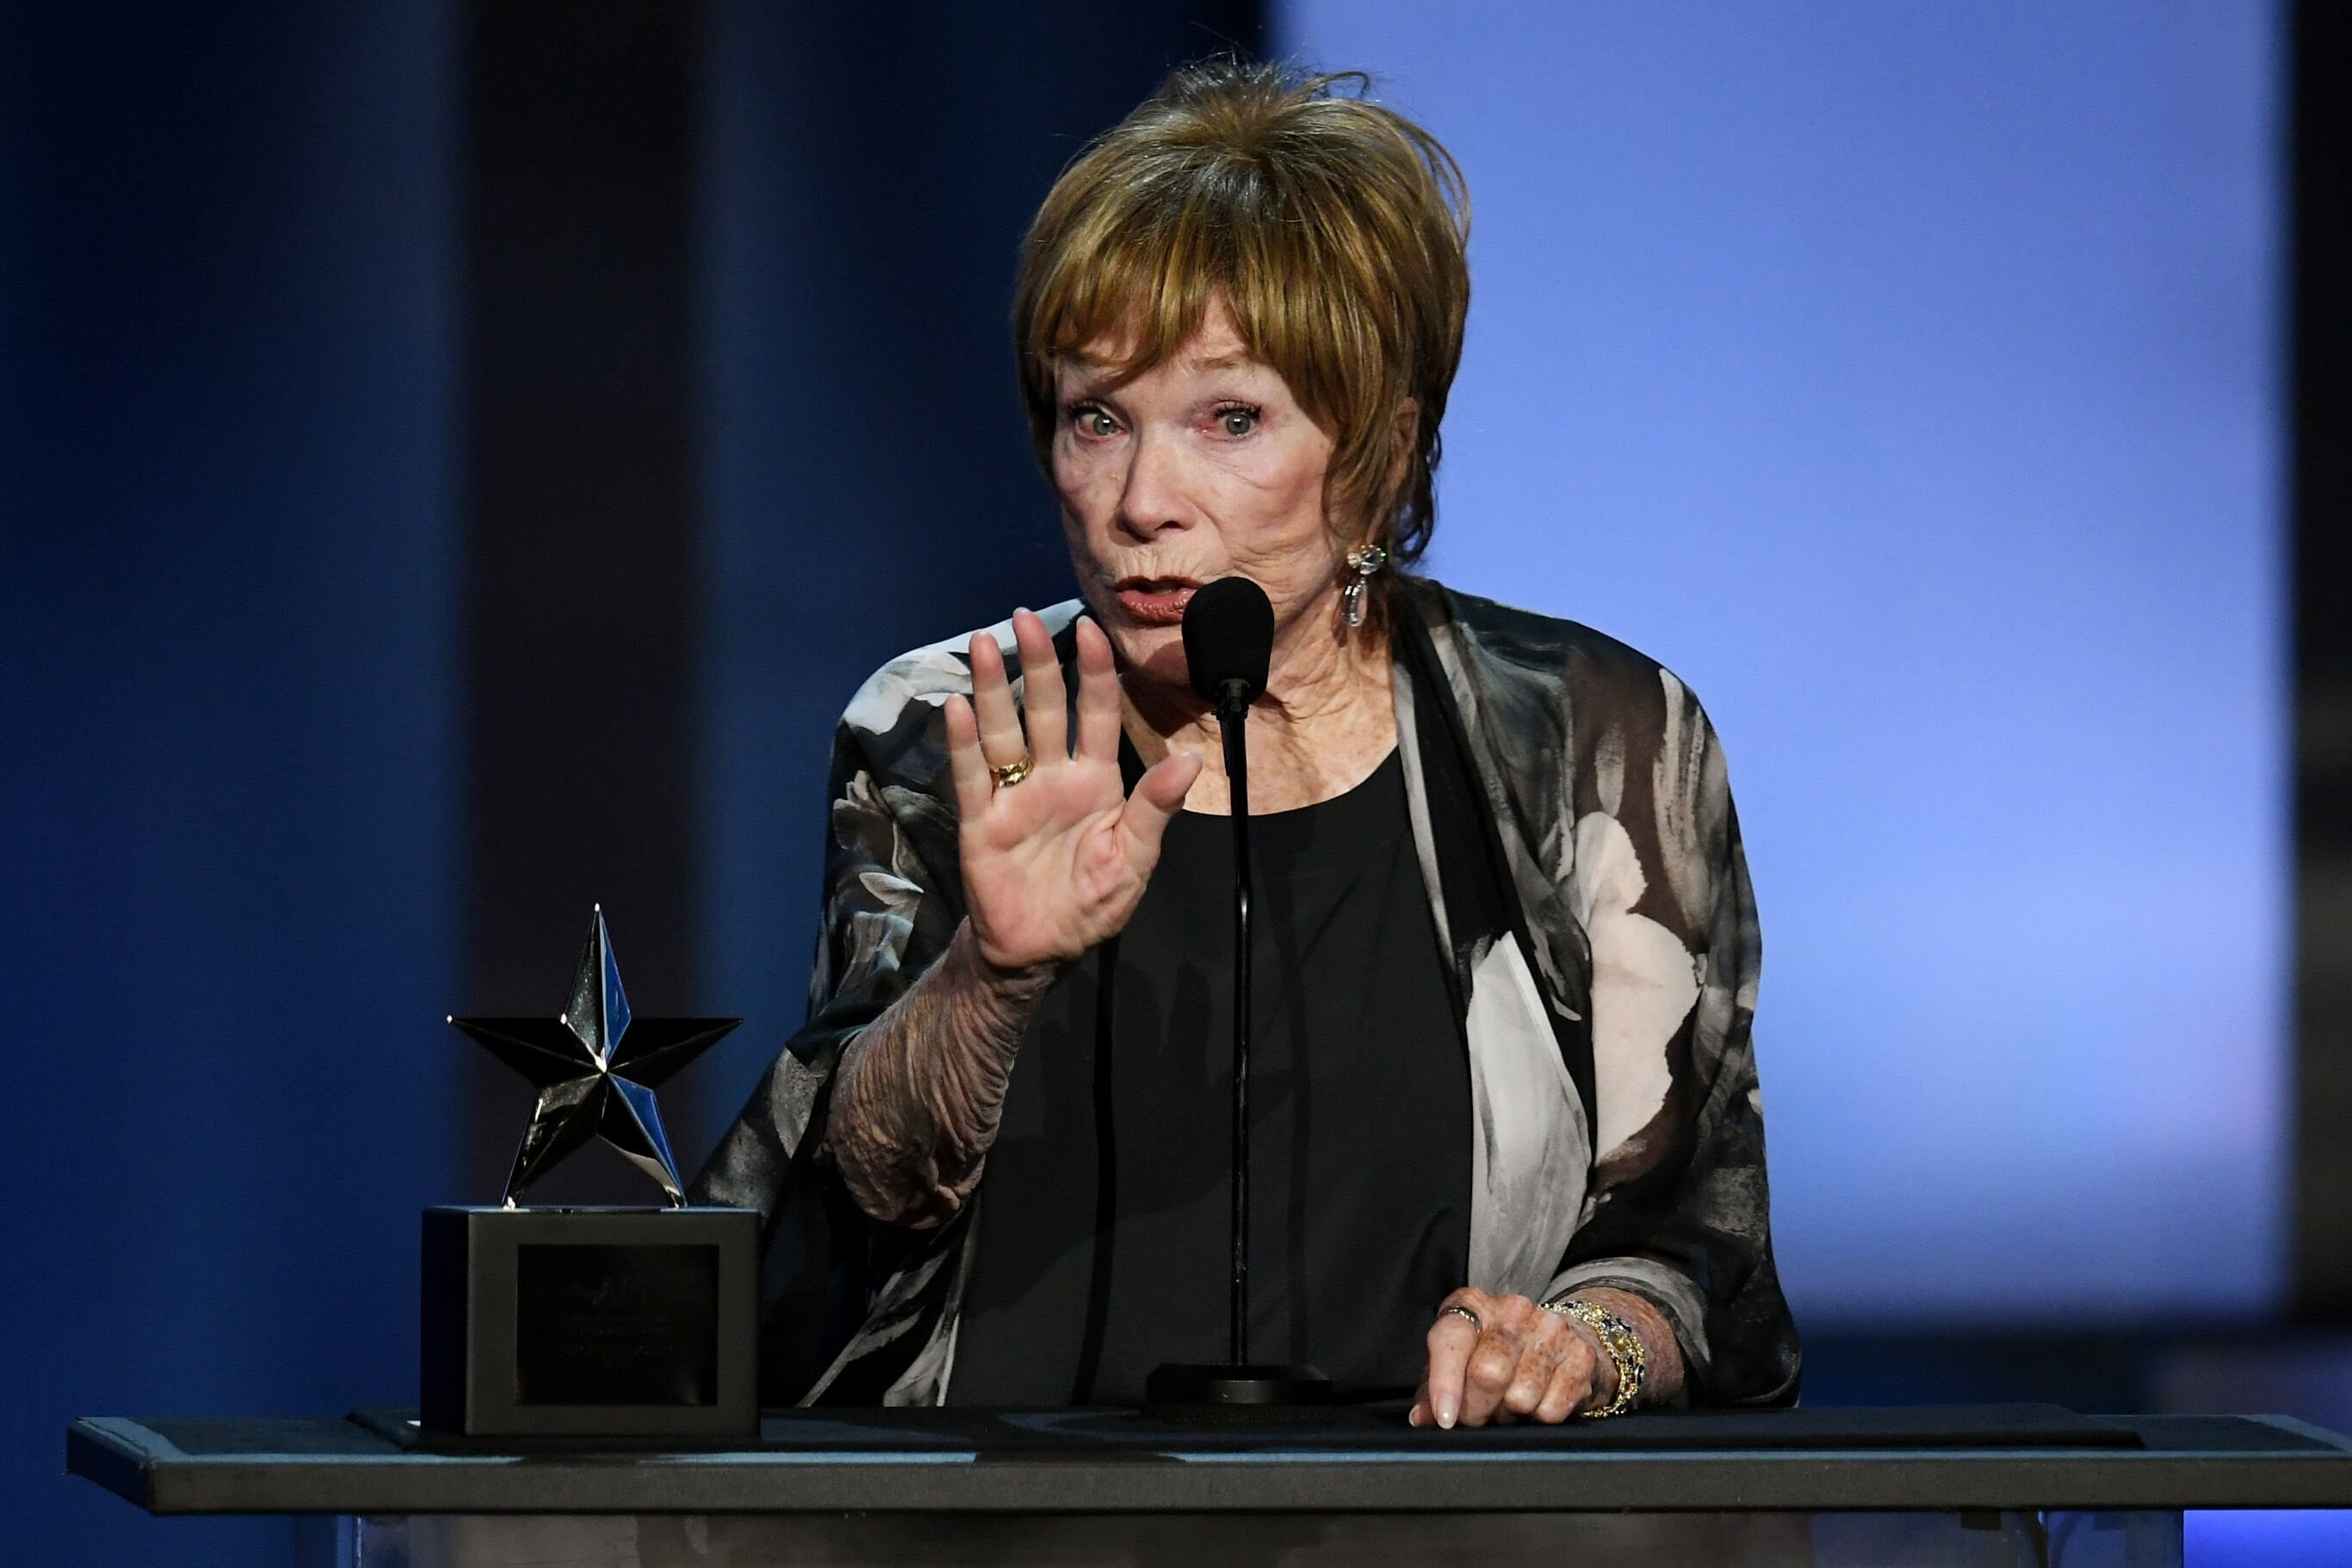 Shirley MacLaine during the American Film Institute's 46th Life Achievement Award Gala. | Source: Getty Images